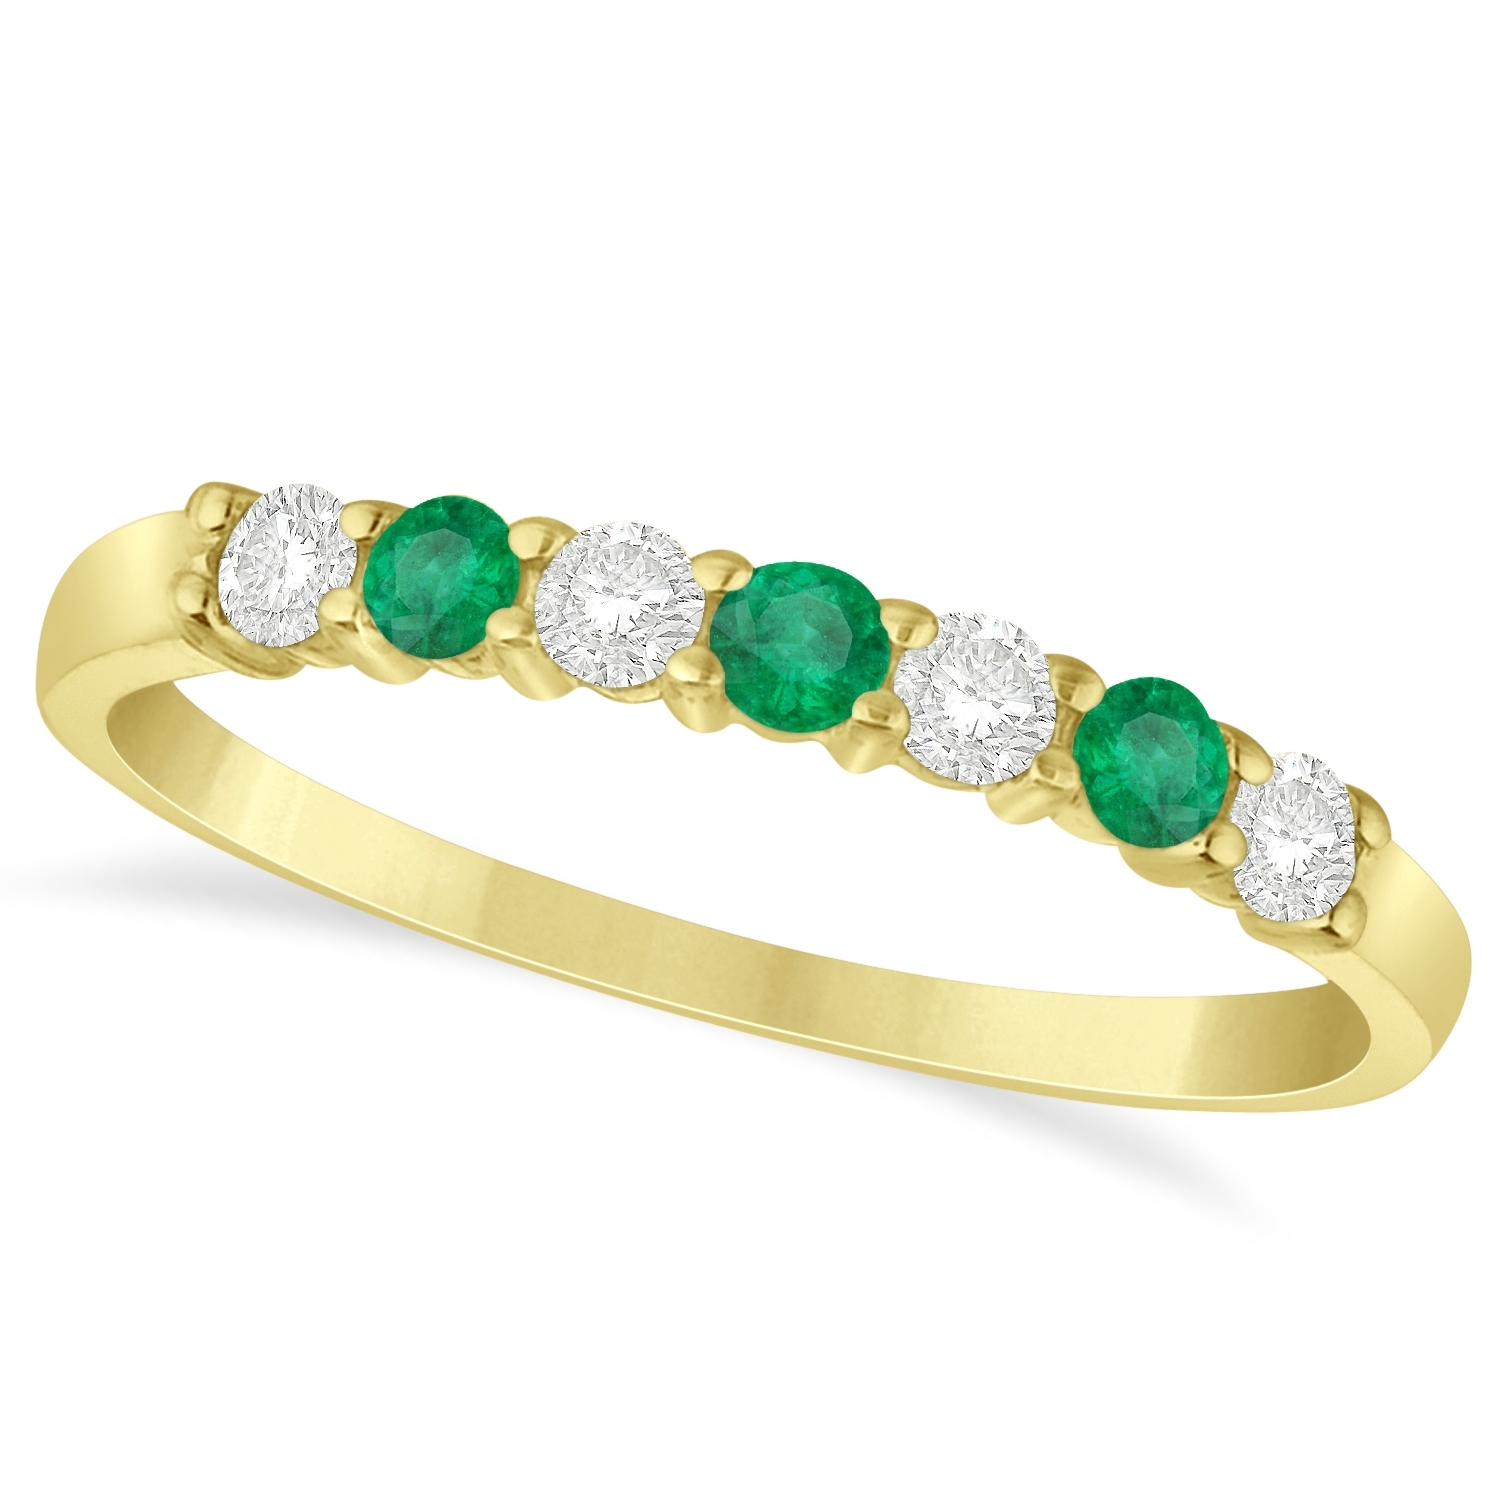 Diamond & Emerald 7 Stone Wedding Band 14K Yellow Gold  (View 8 of 15)